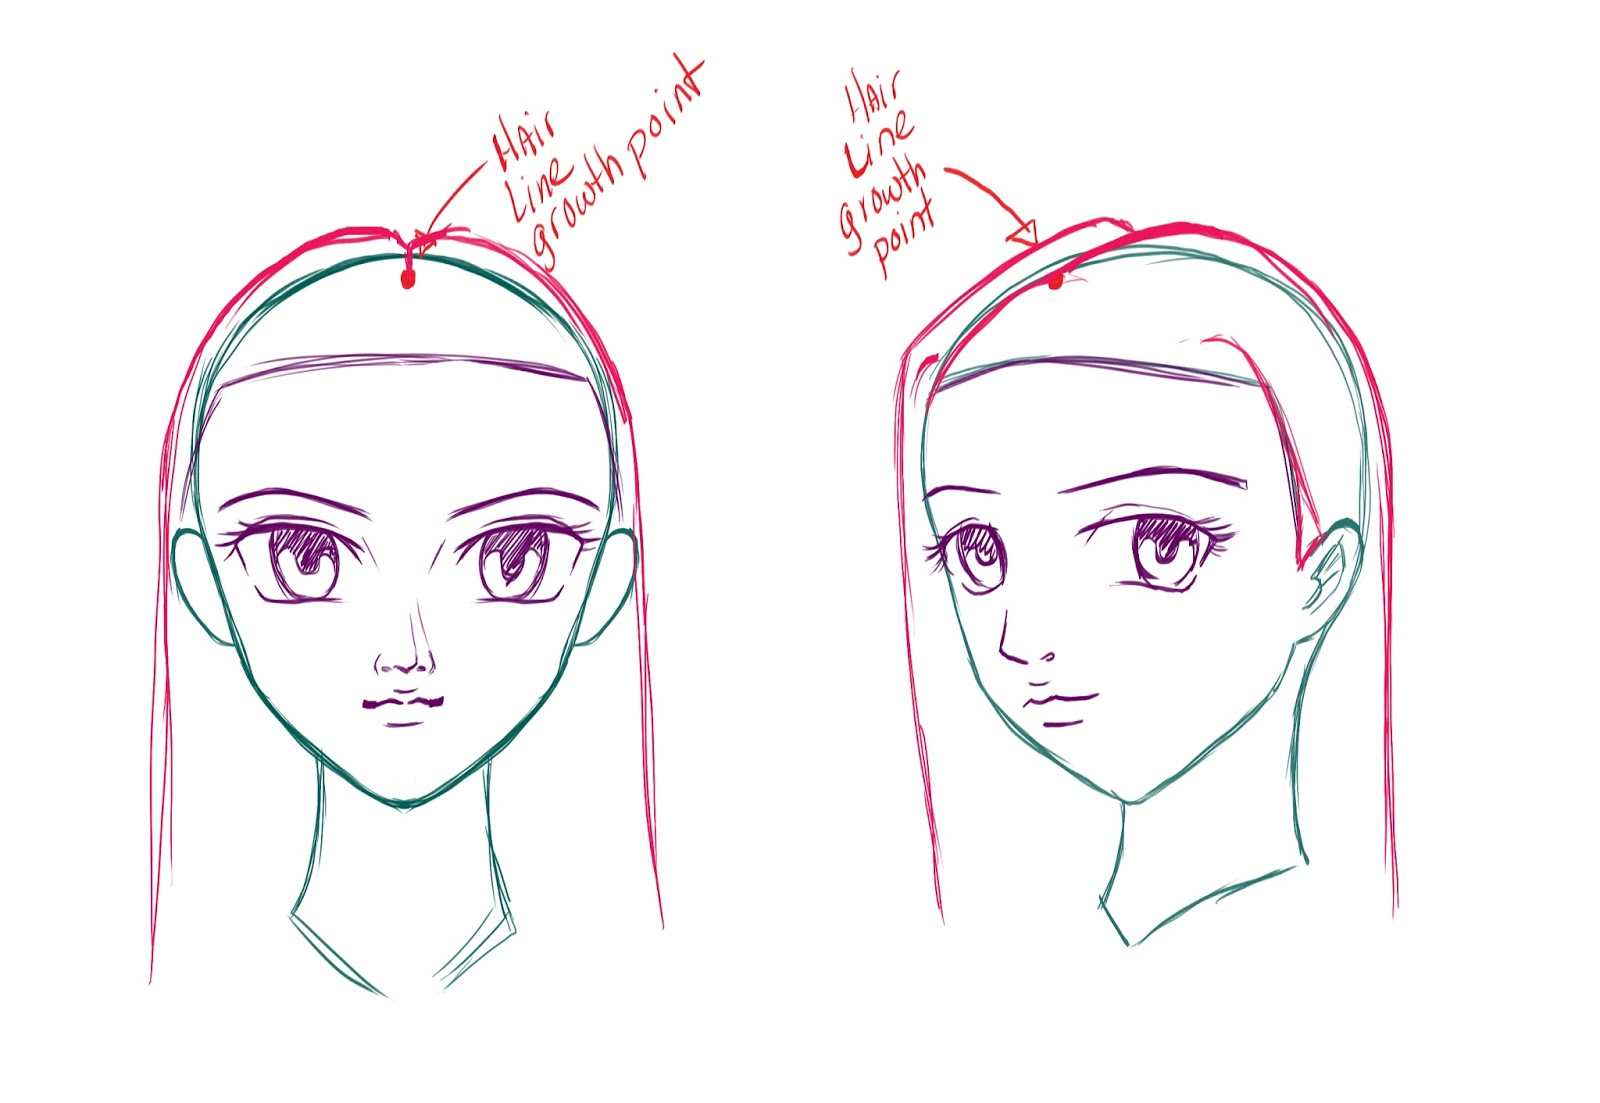 How to Draw Anime/Manga Hair - Draw Central